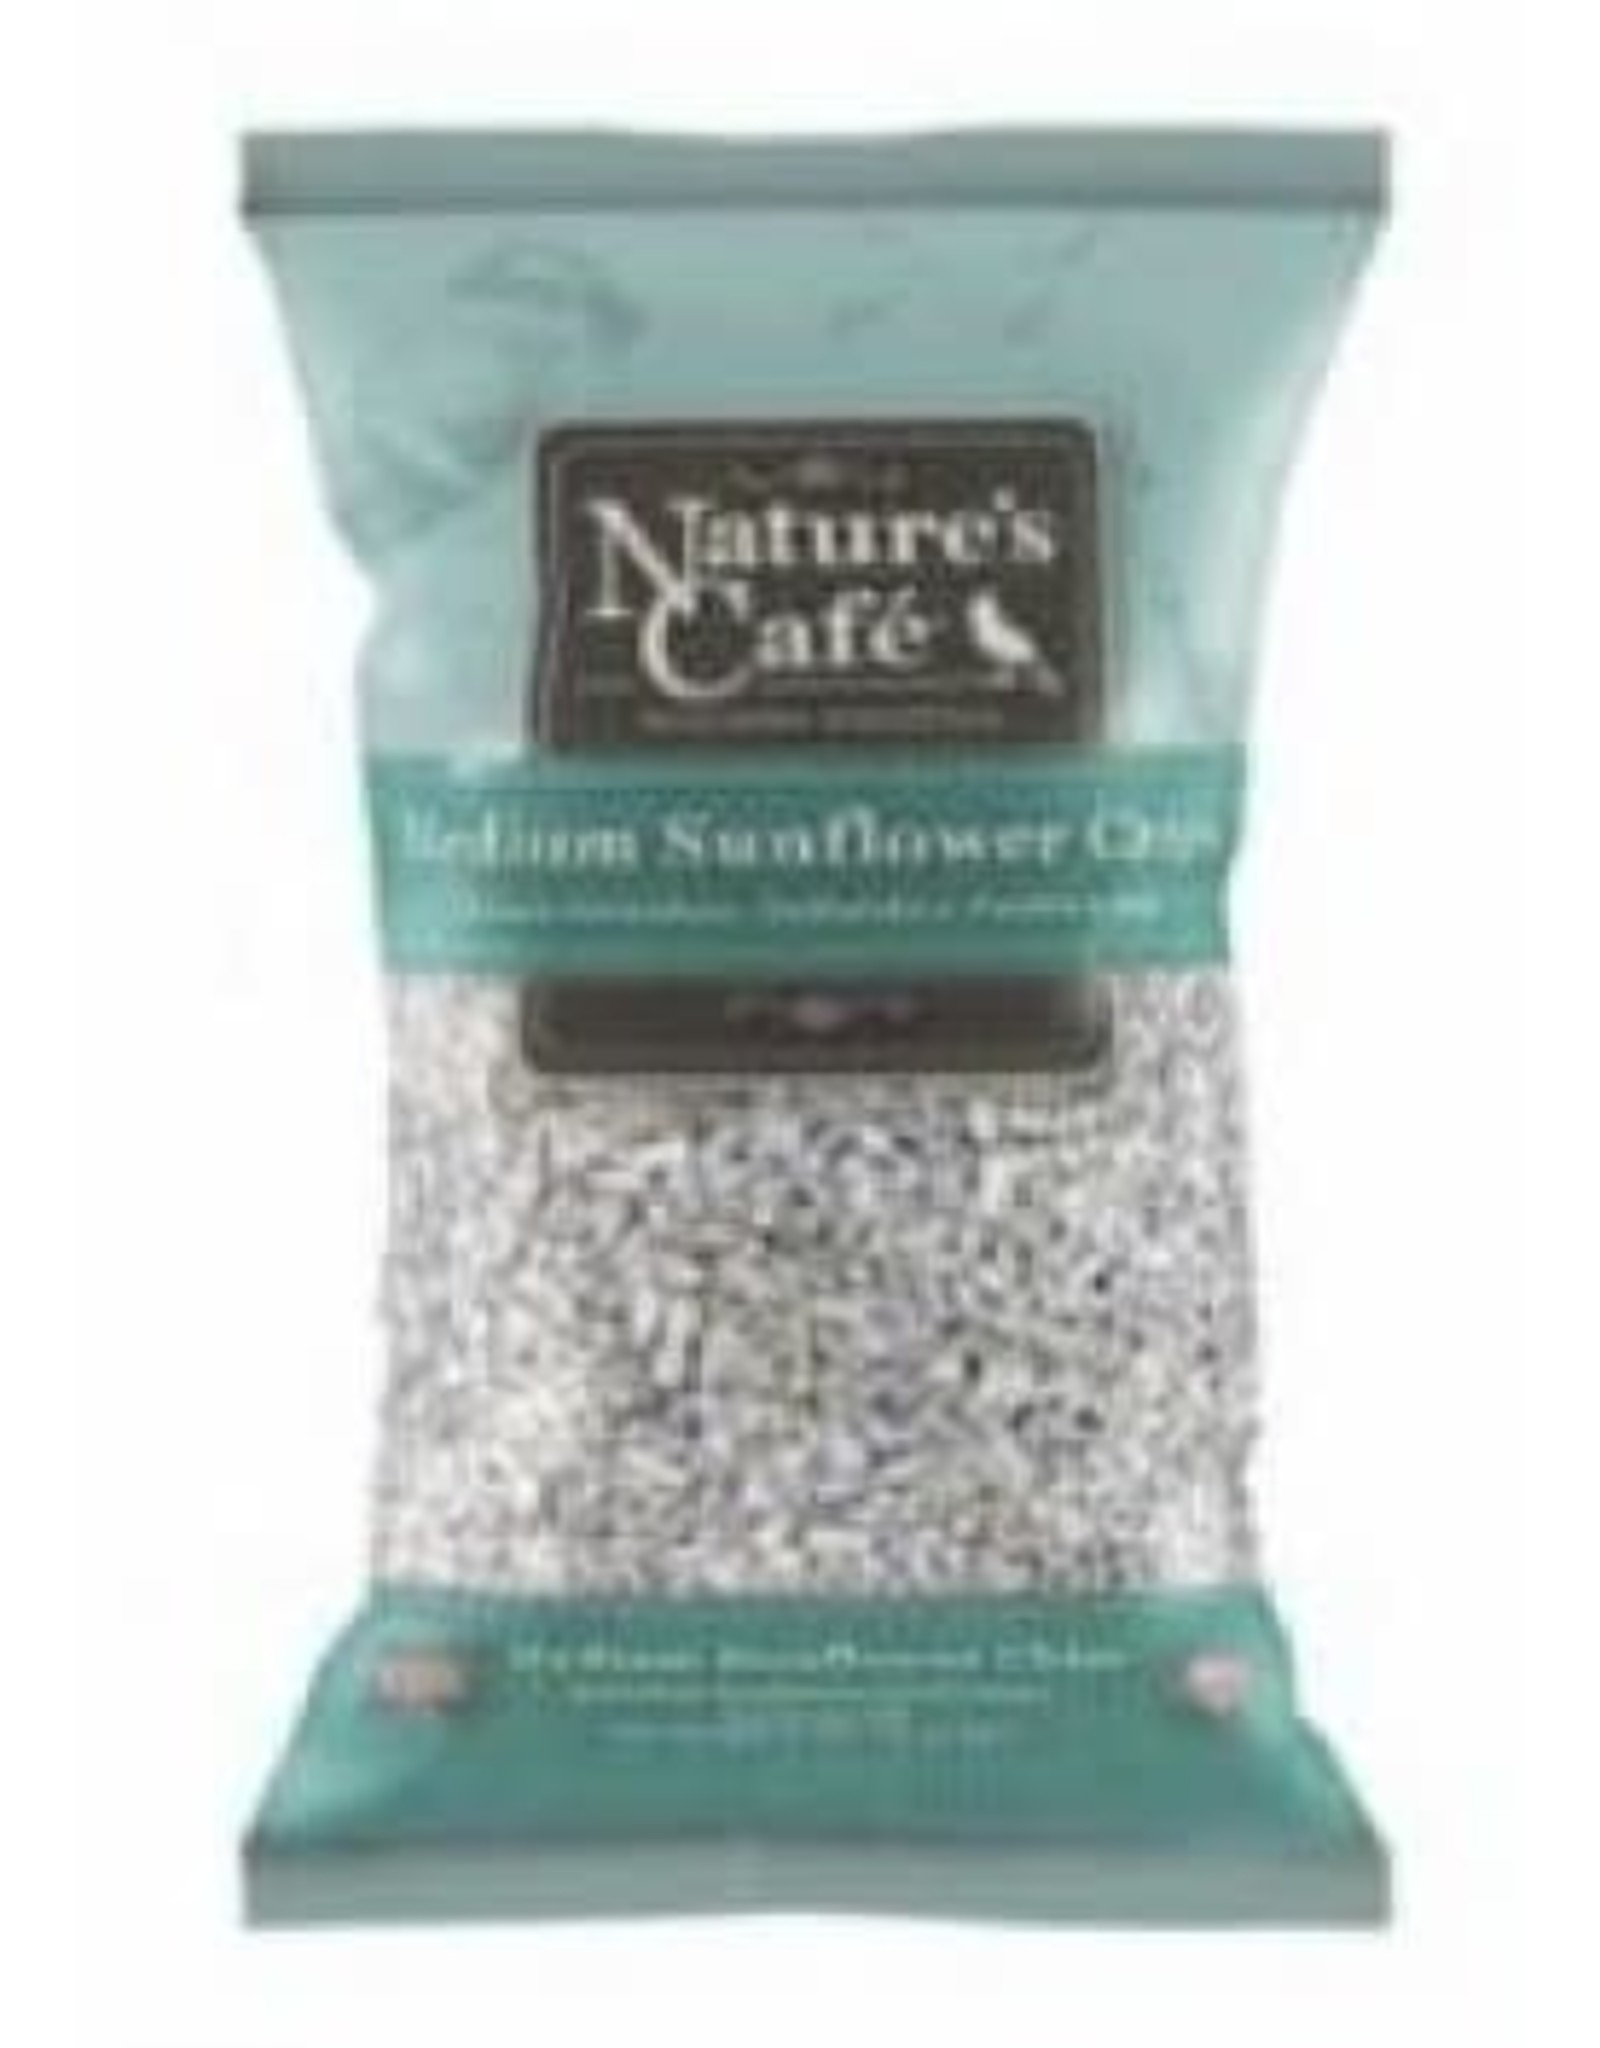 Nature's Cafe: Sunflower Seed Chips 20lb